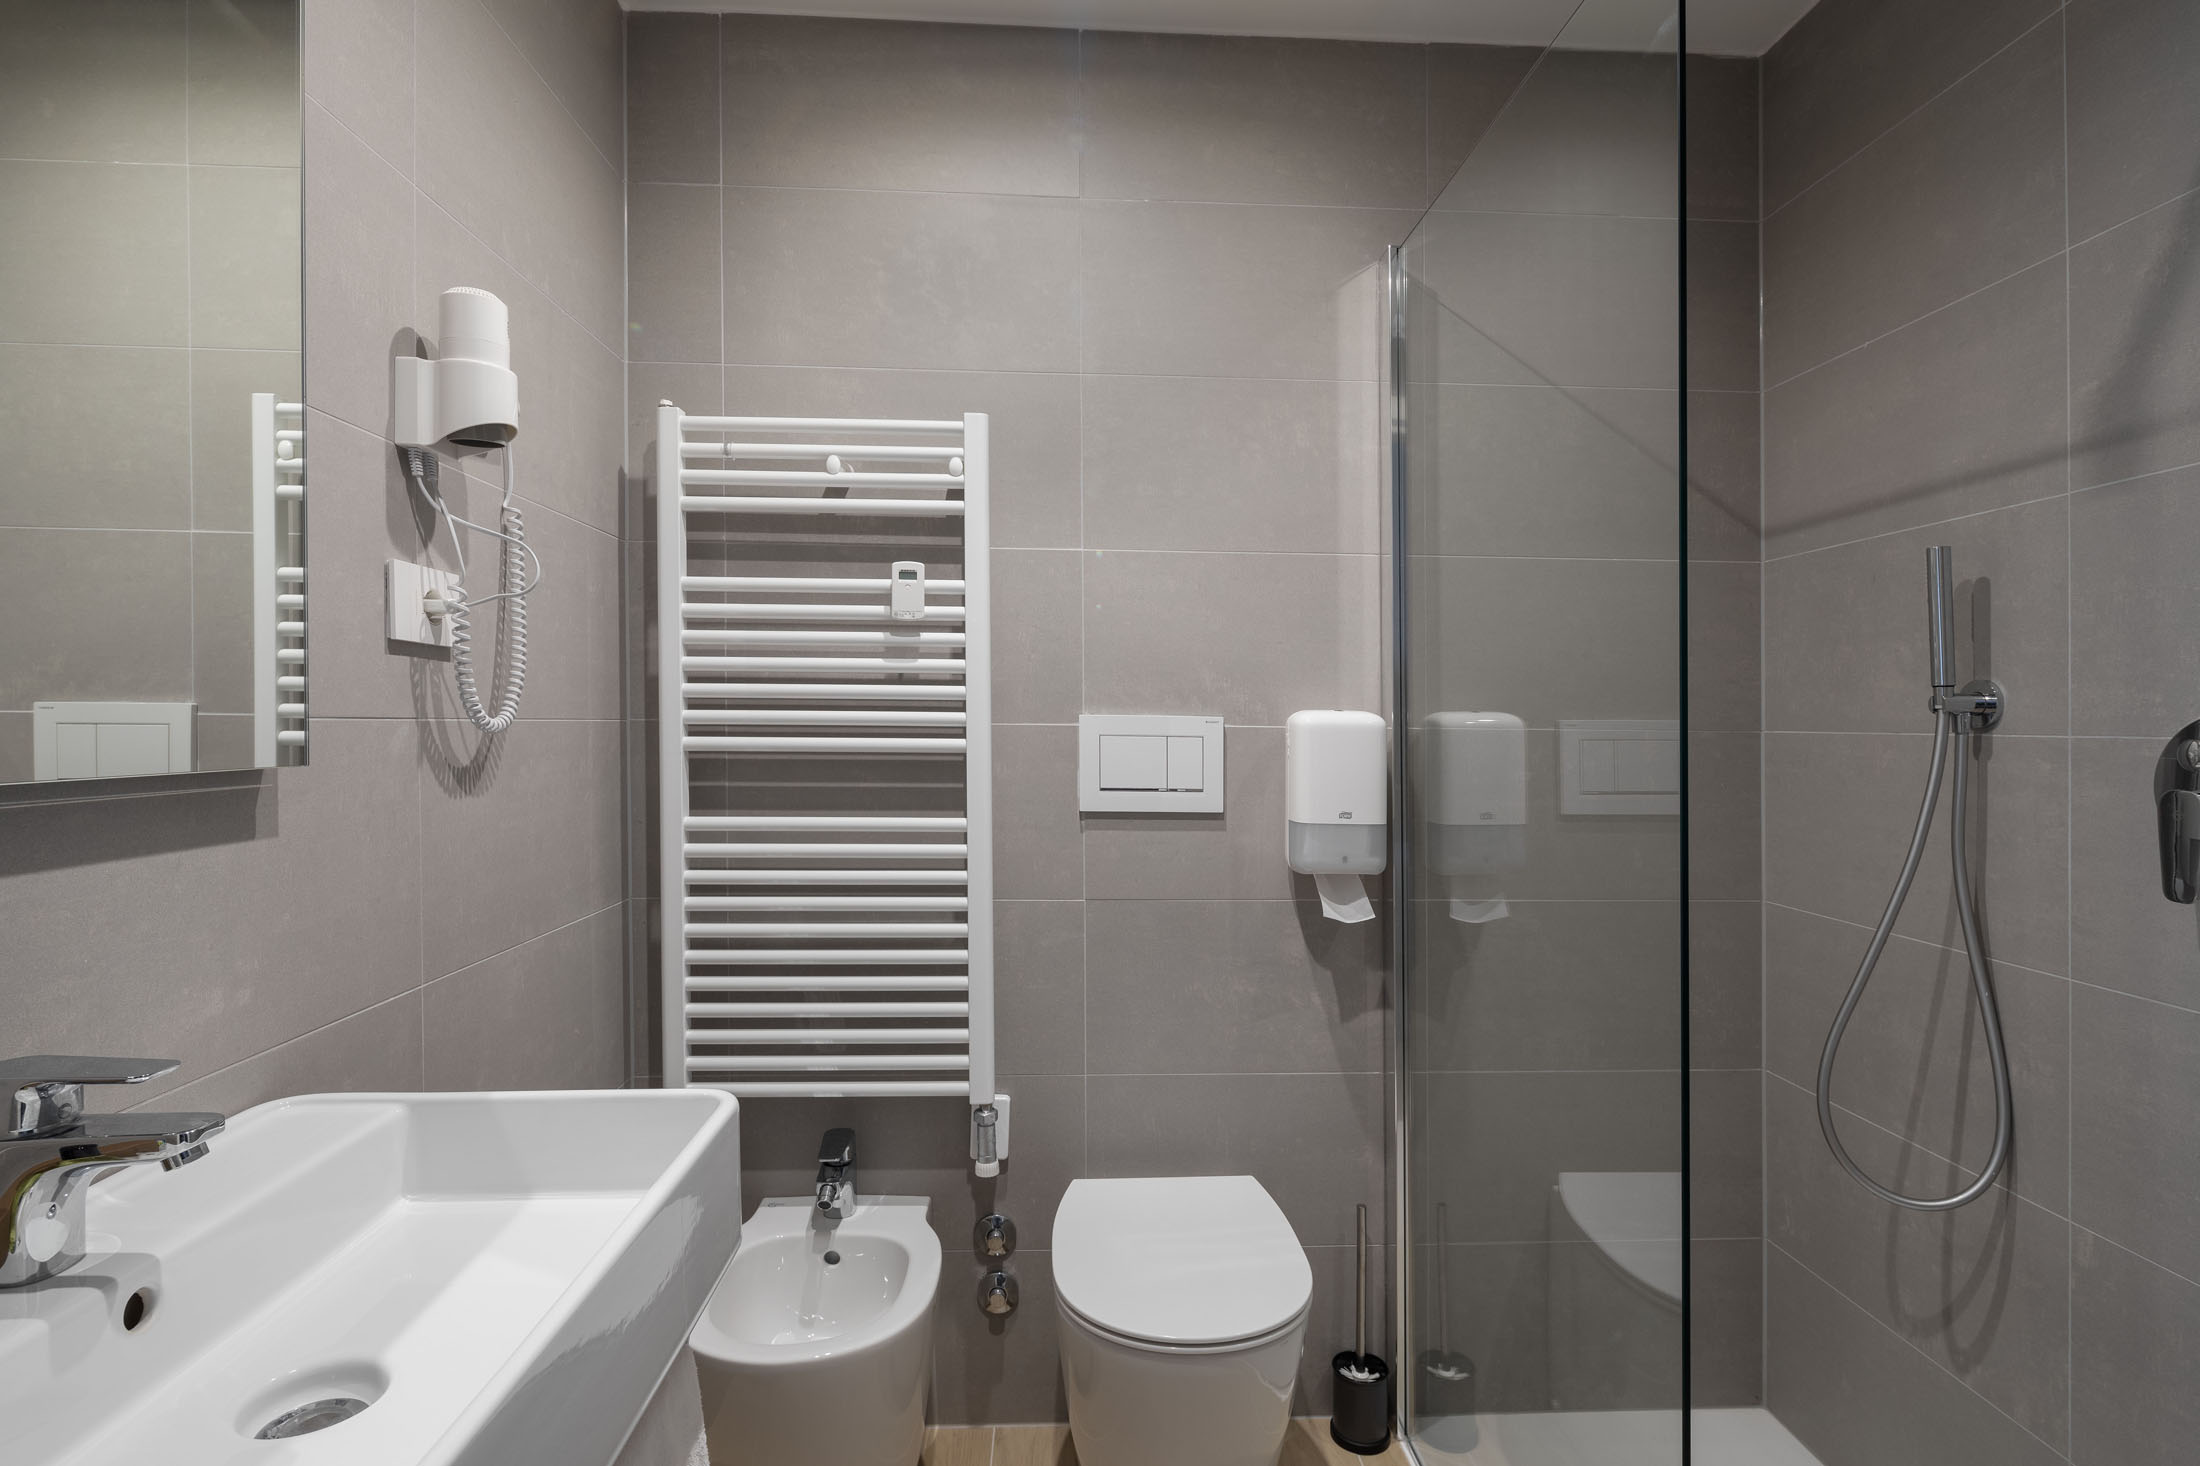 https://www.in-lombardia.it/sites/default/files/accomodation/gallery/105682/37624/excelsior_pavia_24.jpg